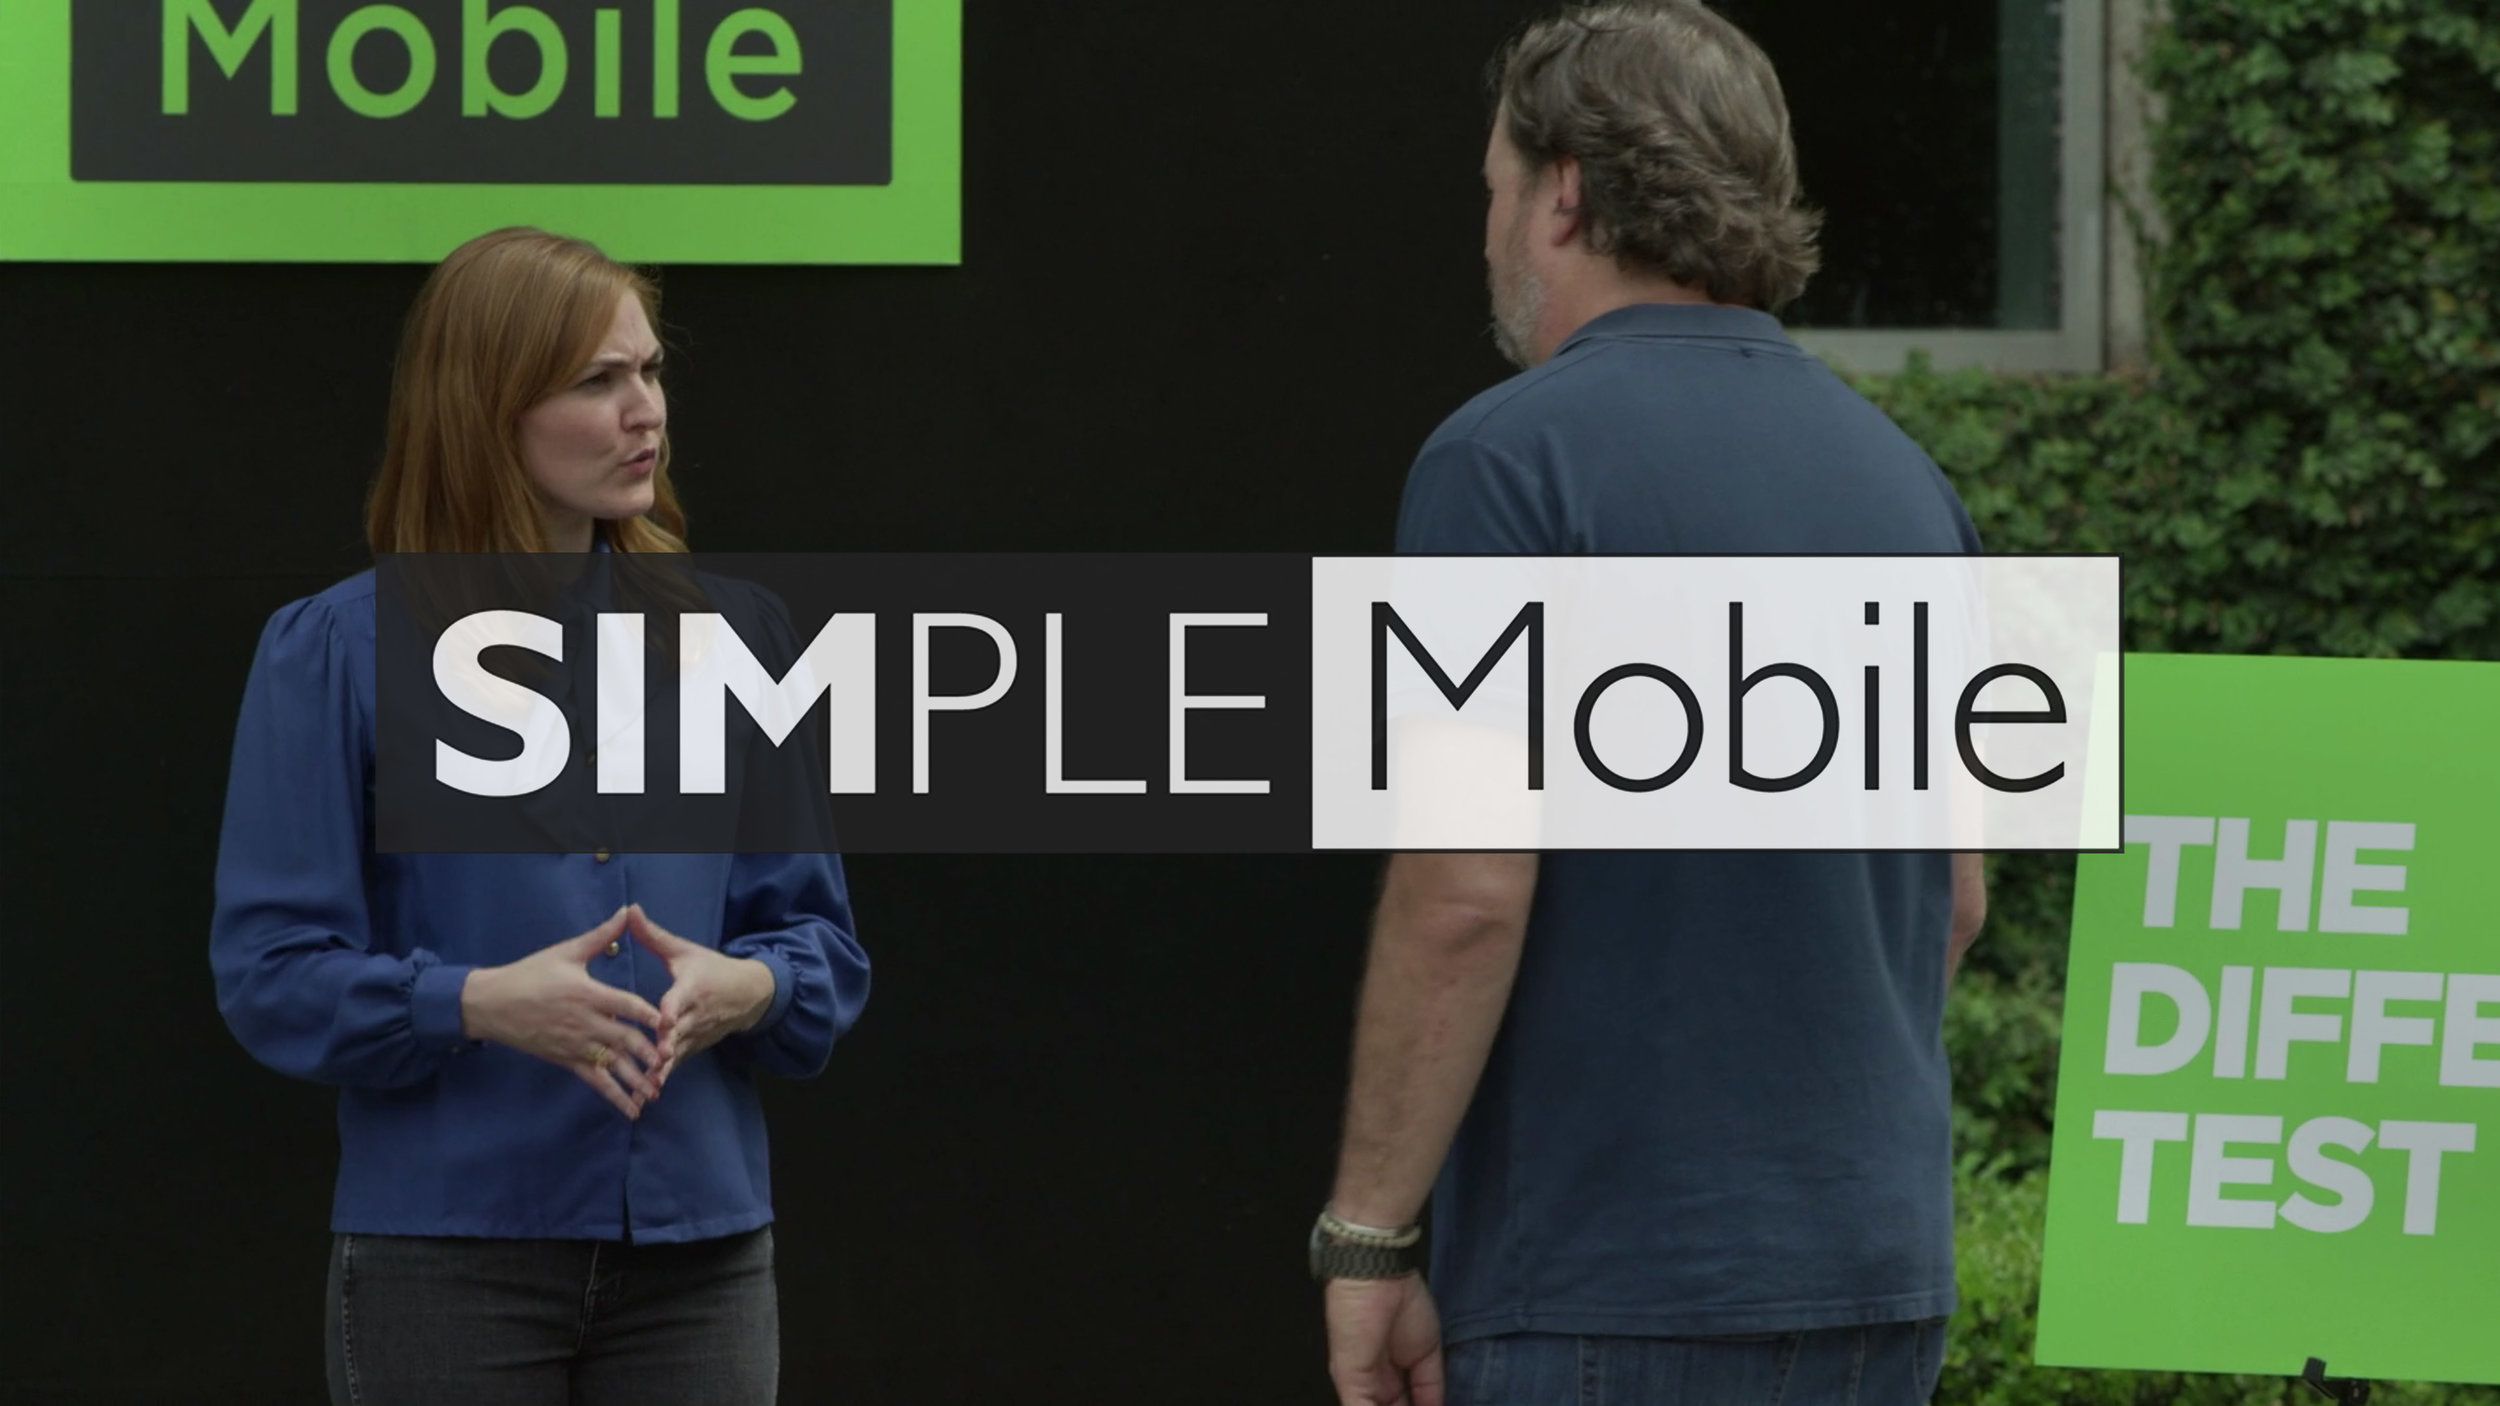 simple mobile difference test thumbnail.jpg